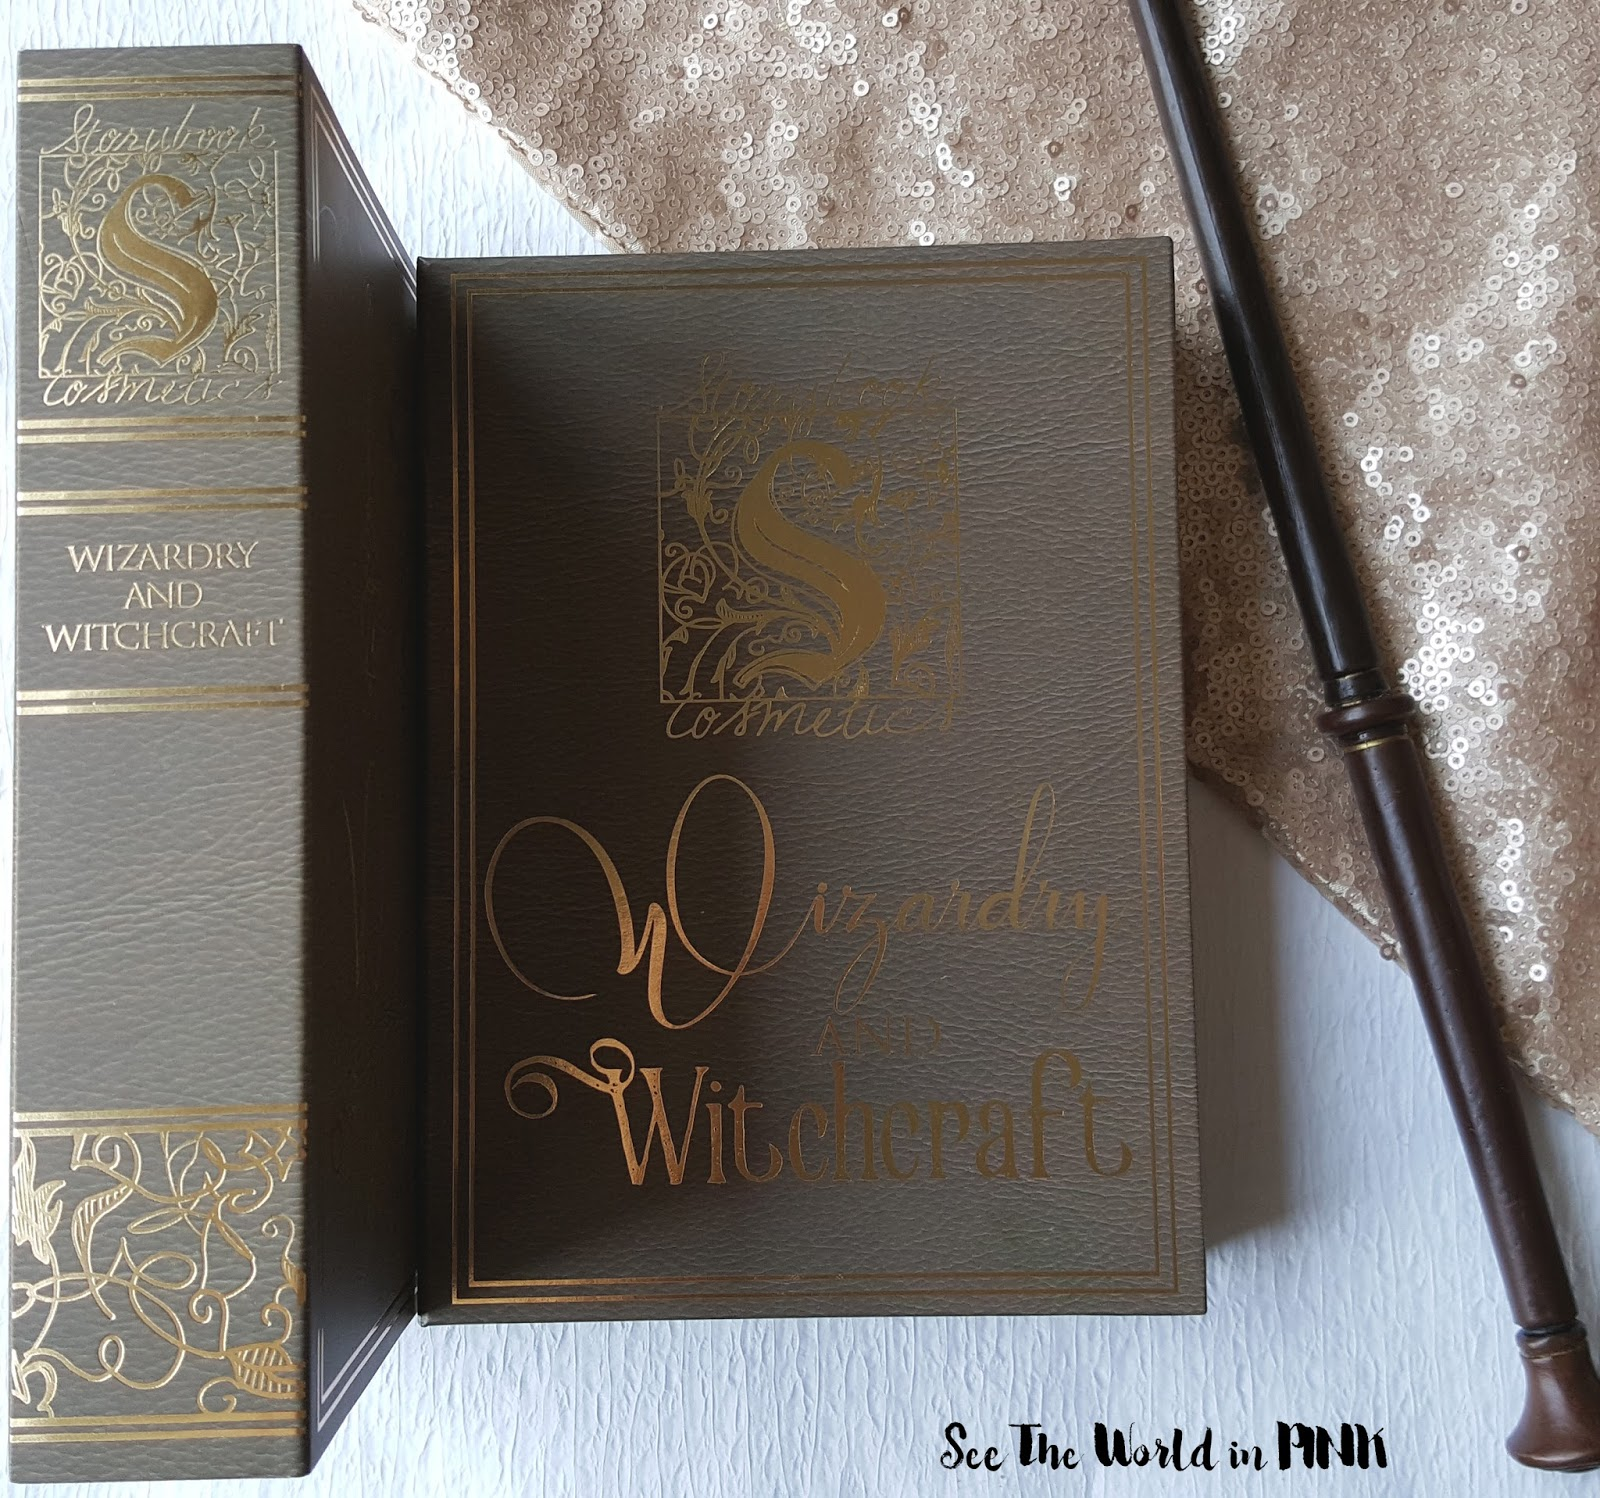 Storybook Cosmetics Witchcraft and Wizardry Palette - Swatches, Review and 4 Back to Hogwarts Looks!